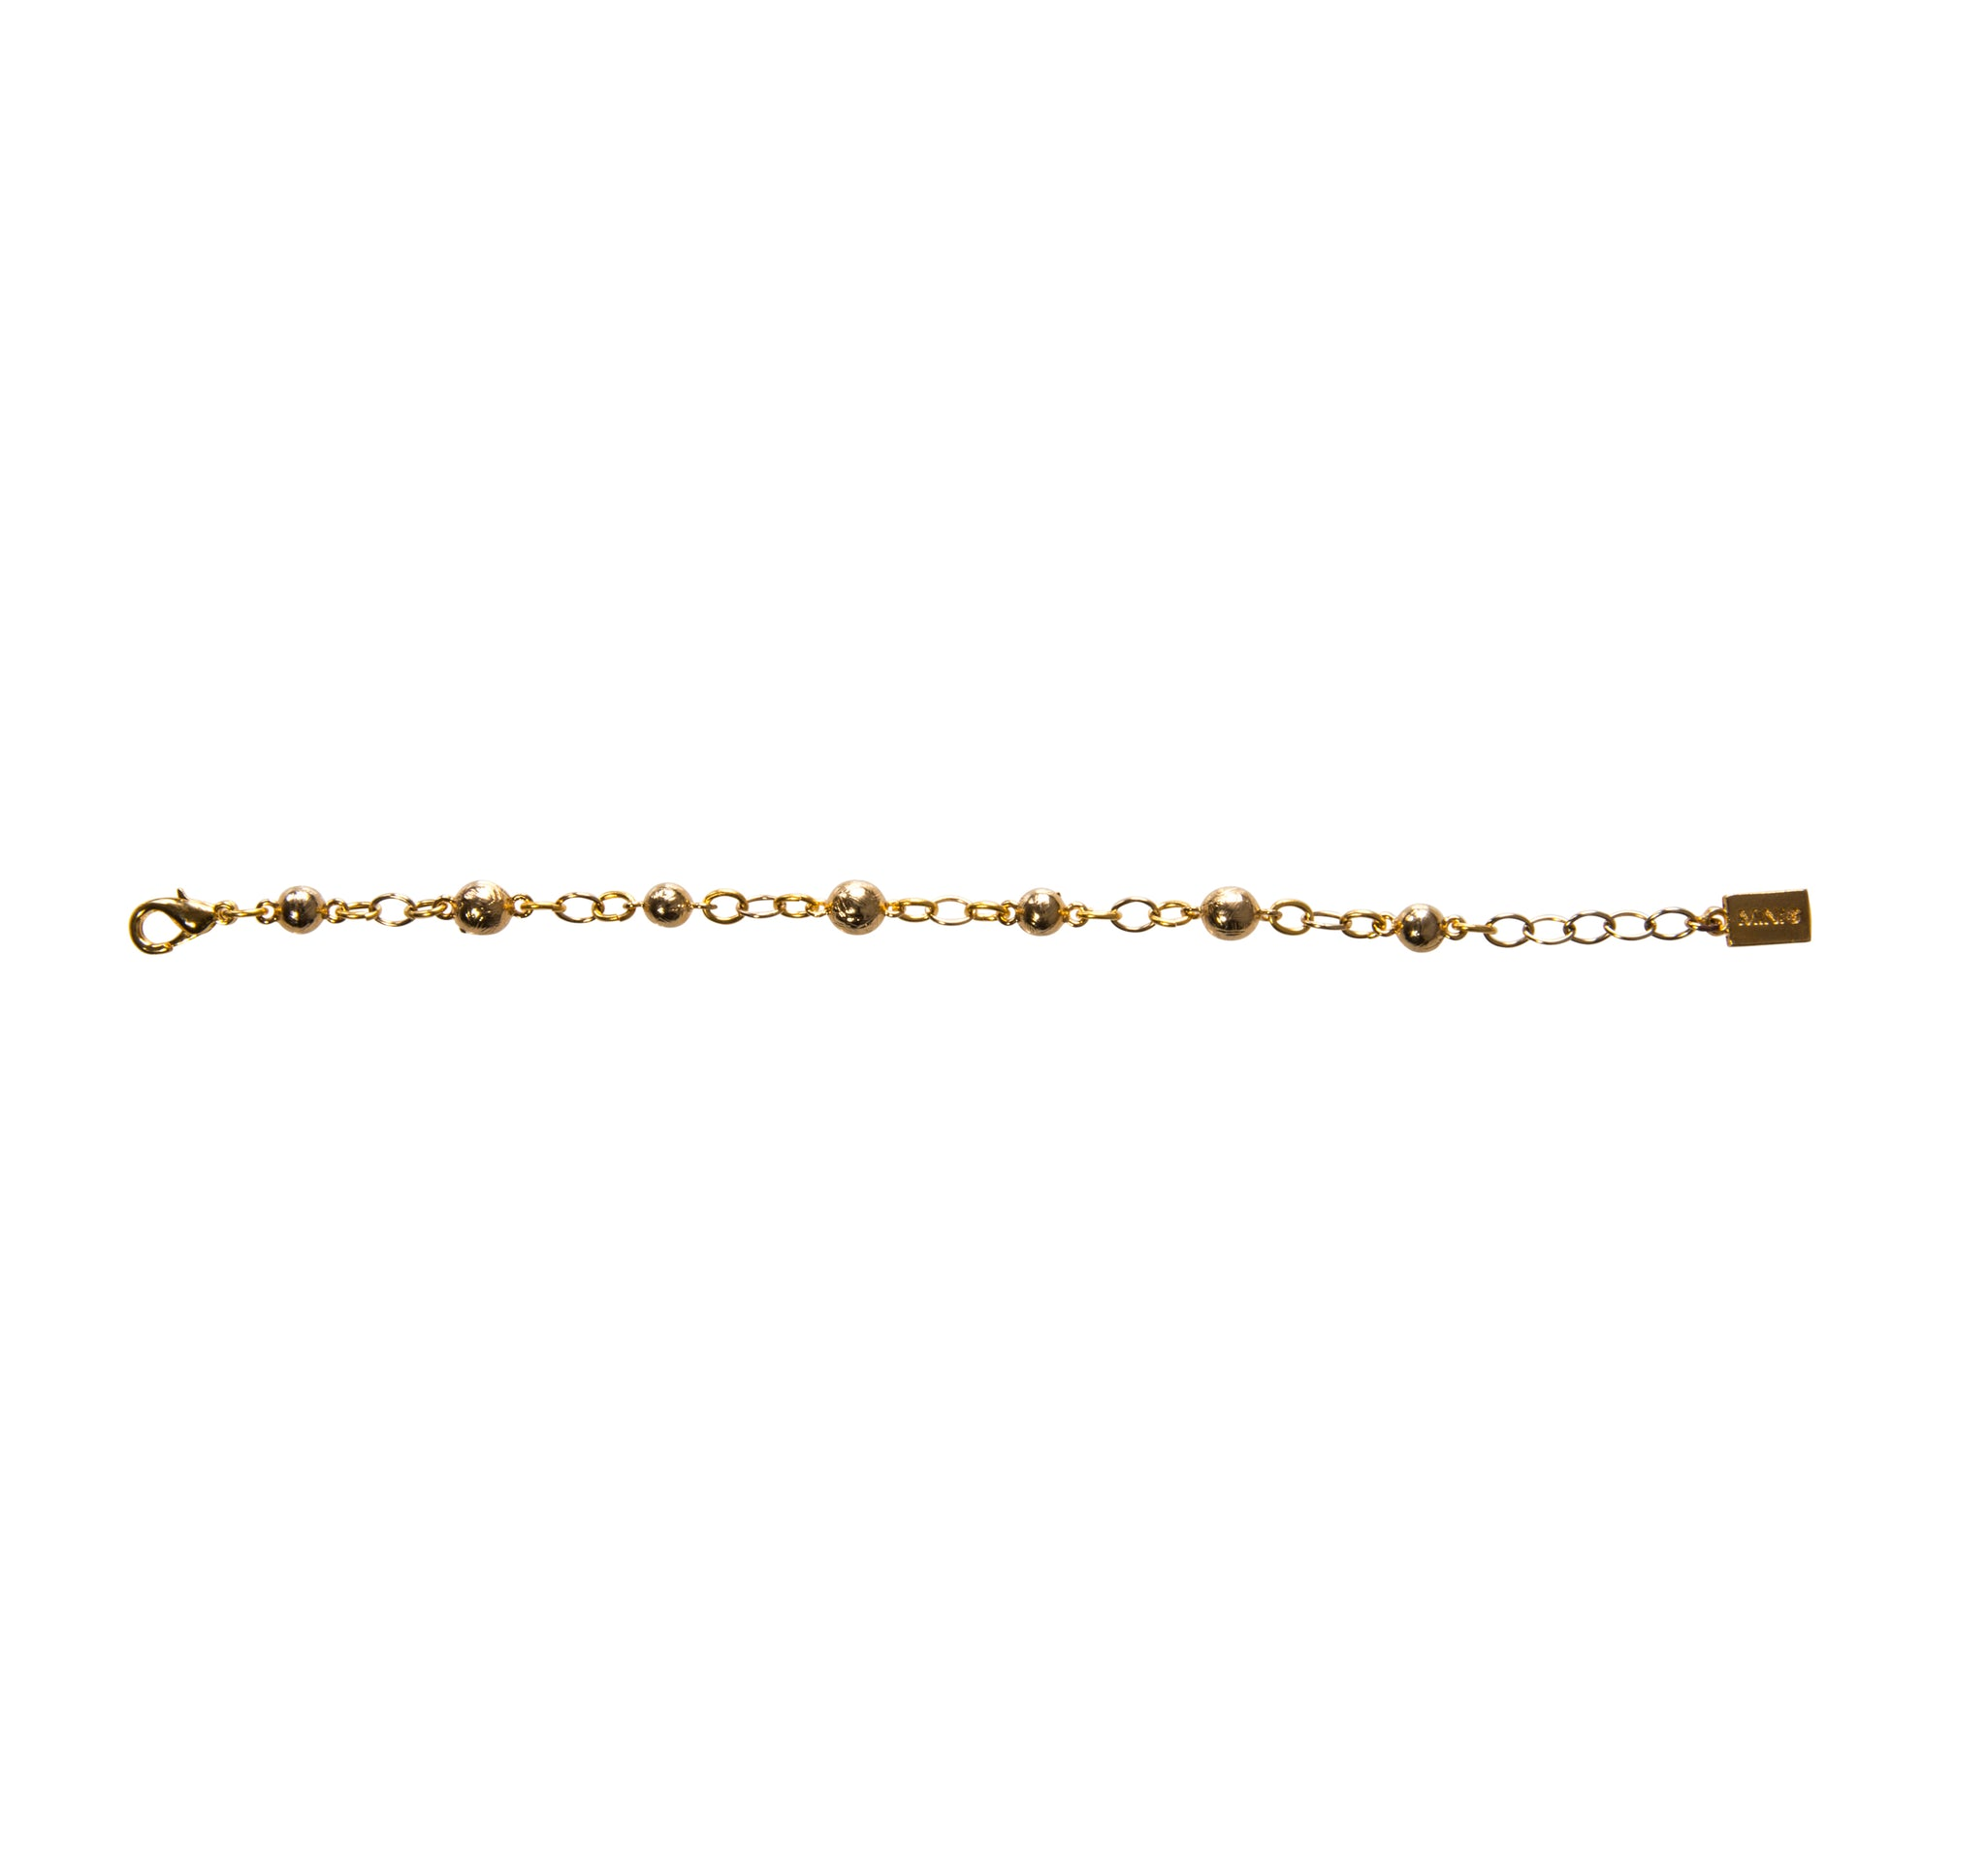 Goldbug Palmetto Textured Bead Bracelet